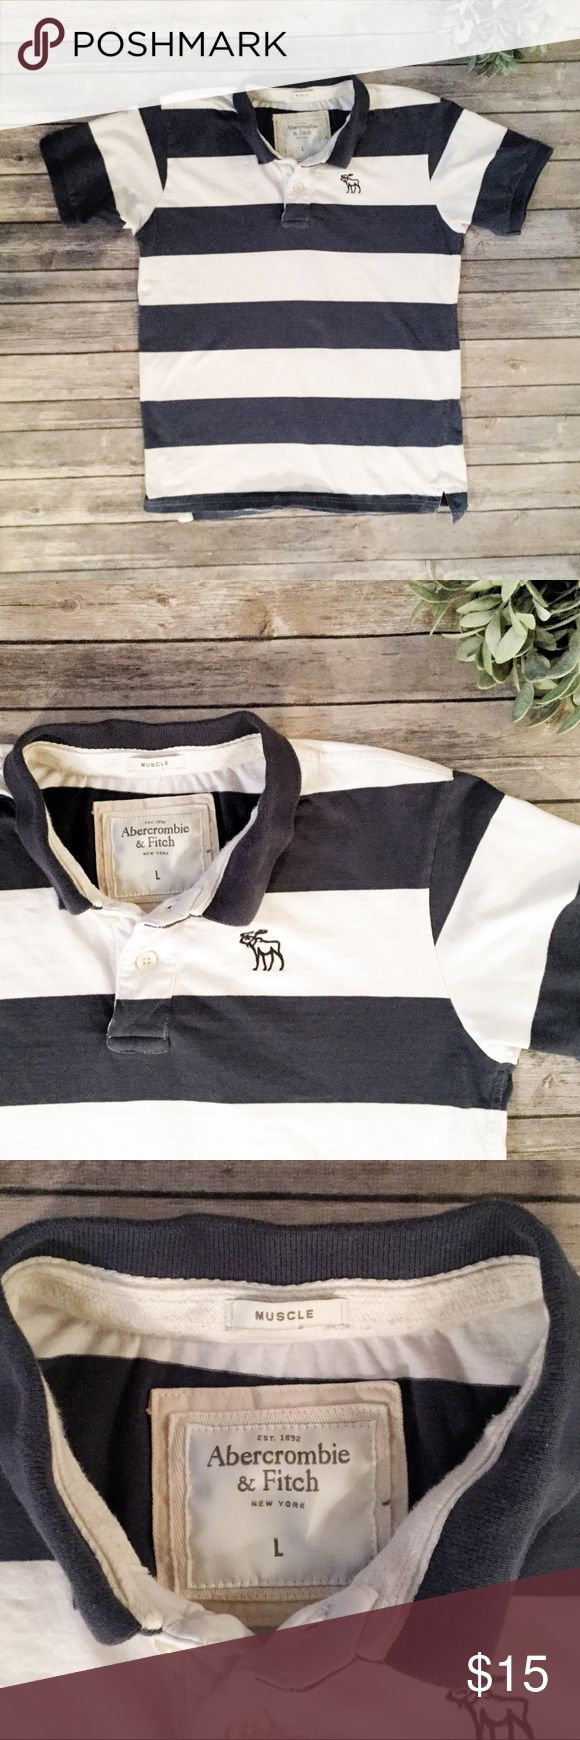 "Abercrombie & Fitch Mens Guys Striped Polo Shirt L Dark blue and white wide stripes, with the classic moose embroidered logo. Super soft fabric, on the thicker side.   ▪️Approx measurement.....Chest- 40""  ▪️ Fabric-100% cotton ▪️ Condition-a bit of fading, but no holes or stains.  ▪️ Preppy, hipster, muscle, rugby, varsity  Offers welcome Abercrombie & Fitch Shirts Polos"